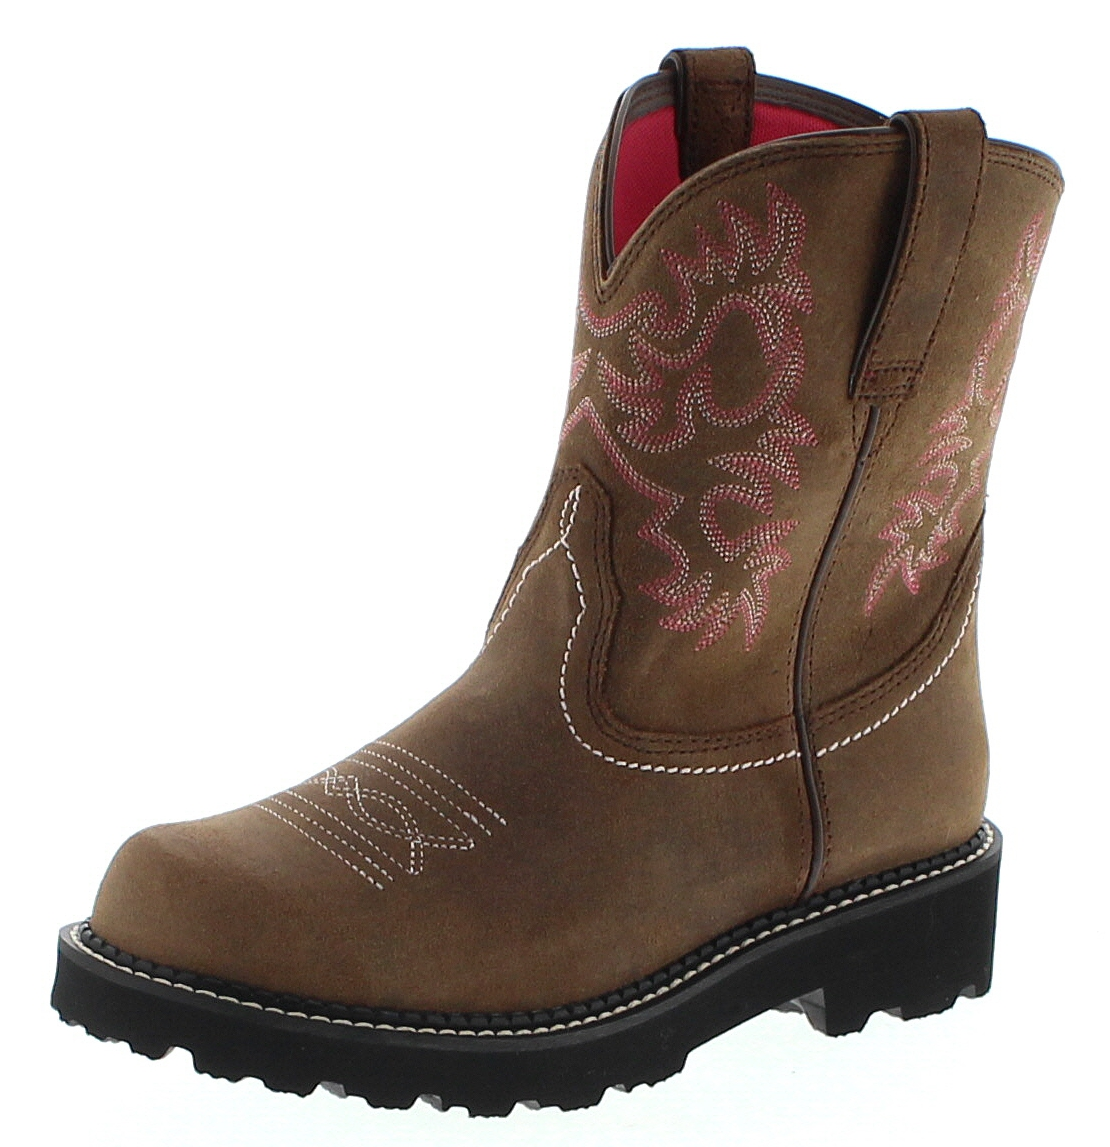 Ariat 21484 FATBABY Dark Barley Western boots - brown